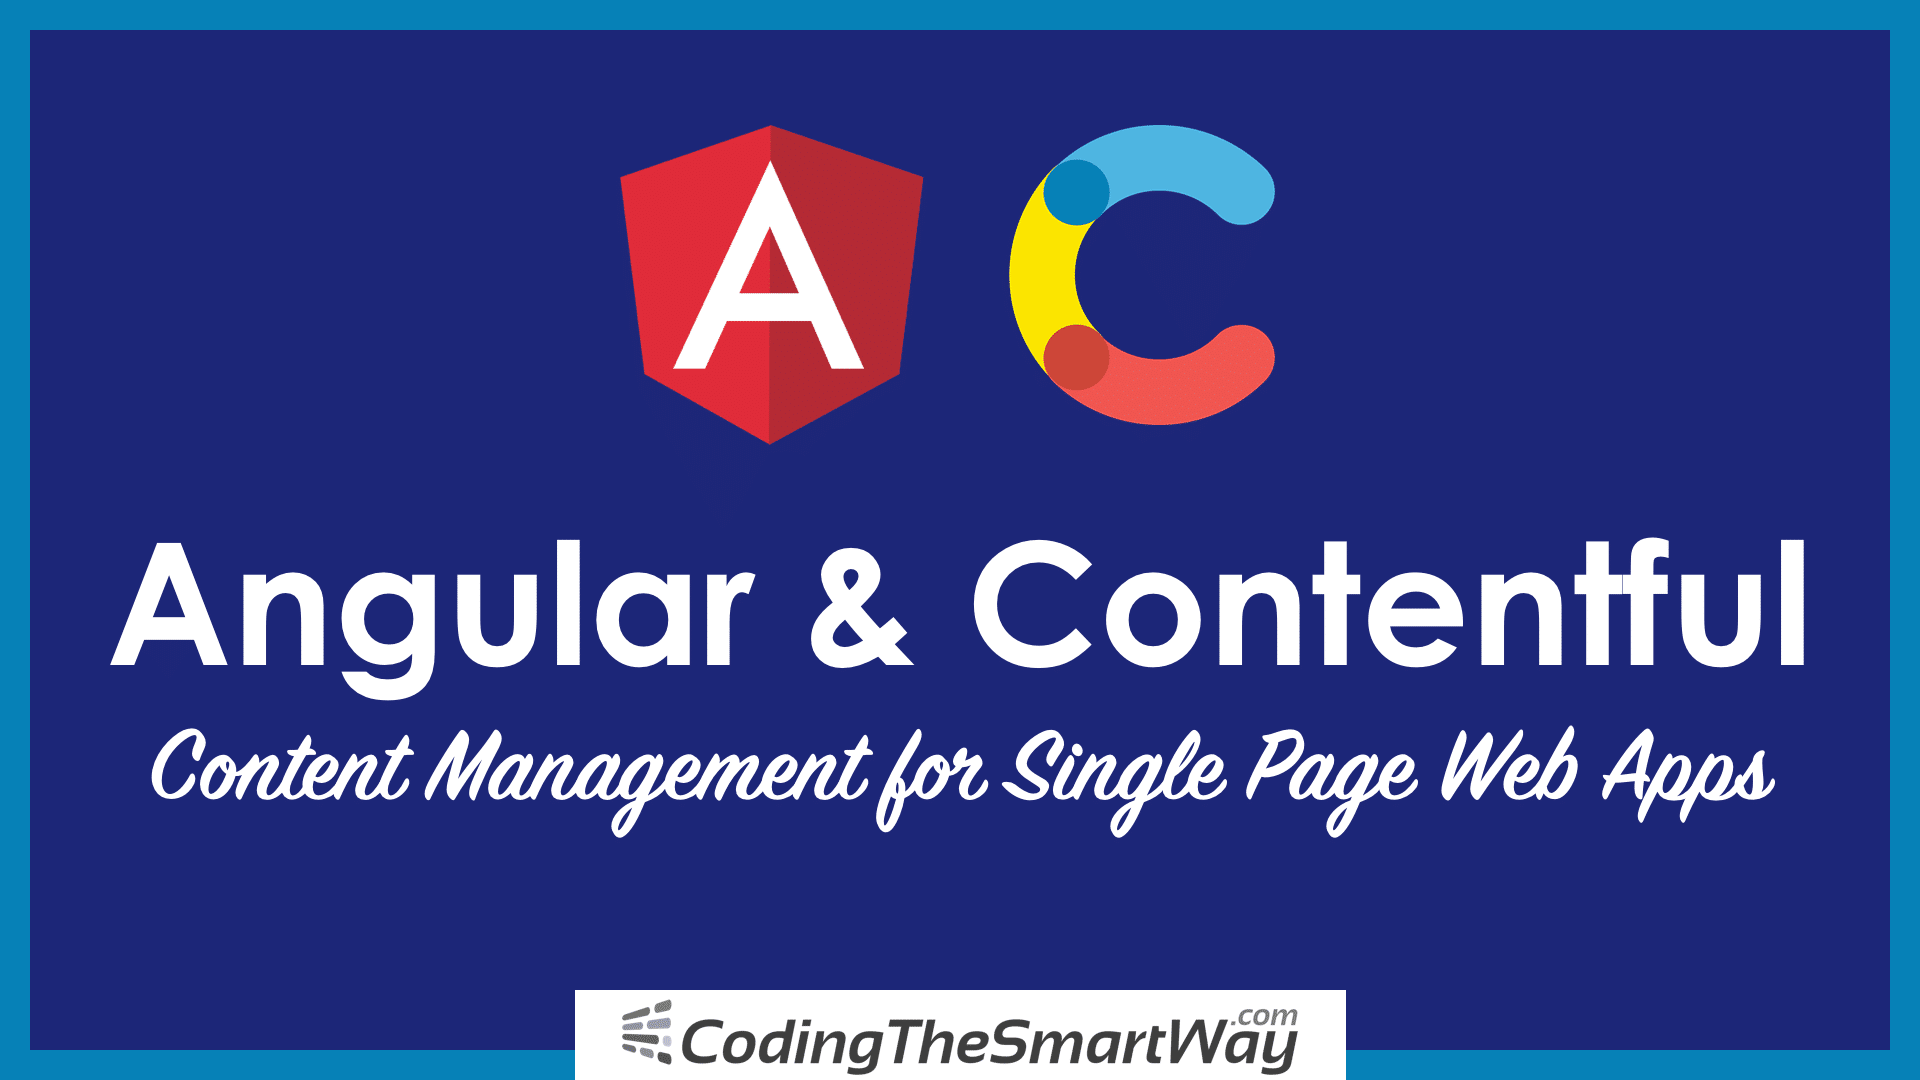 Angular And Contentful - Content Management For Single-Page